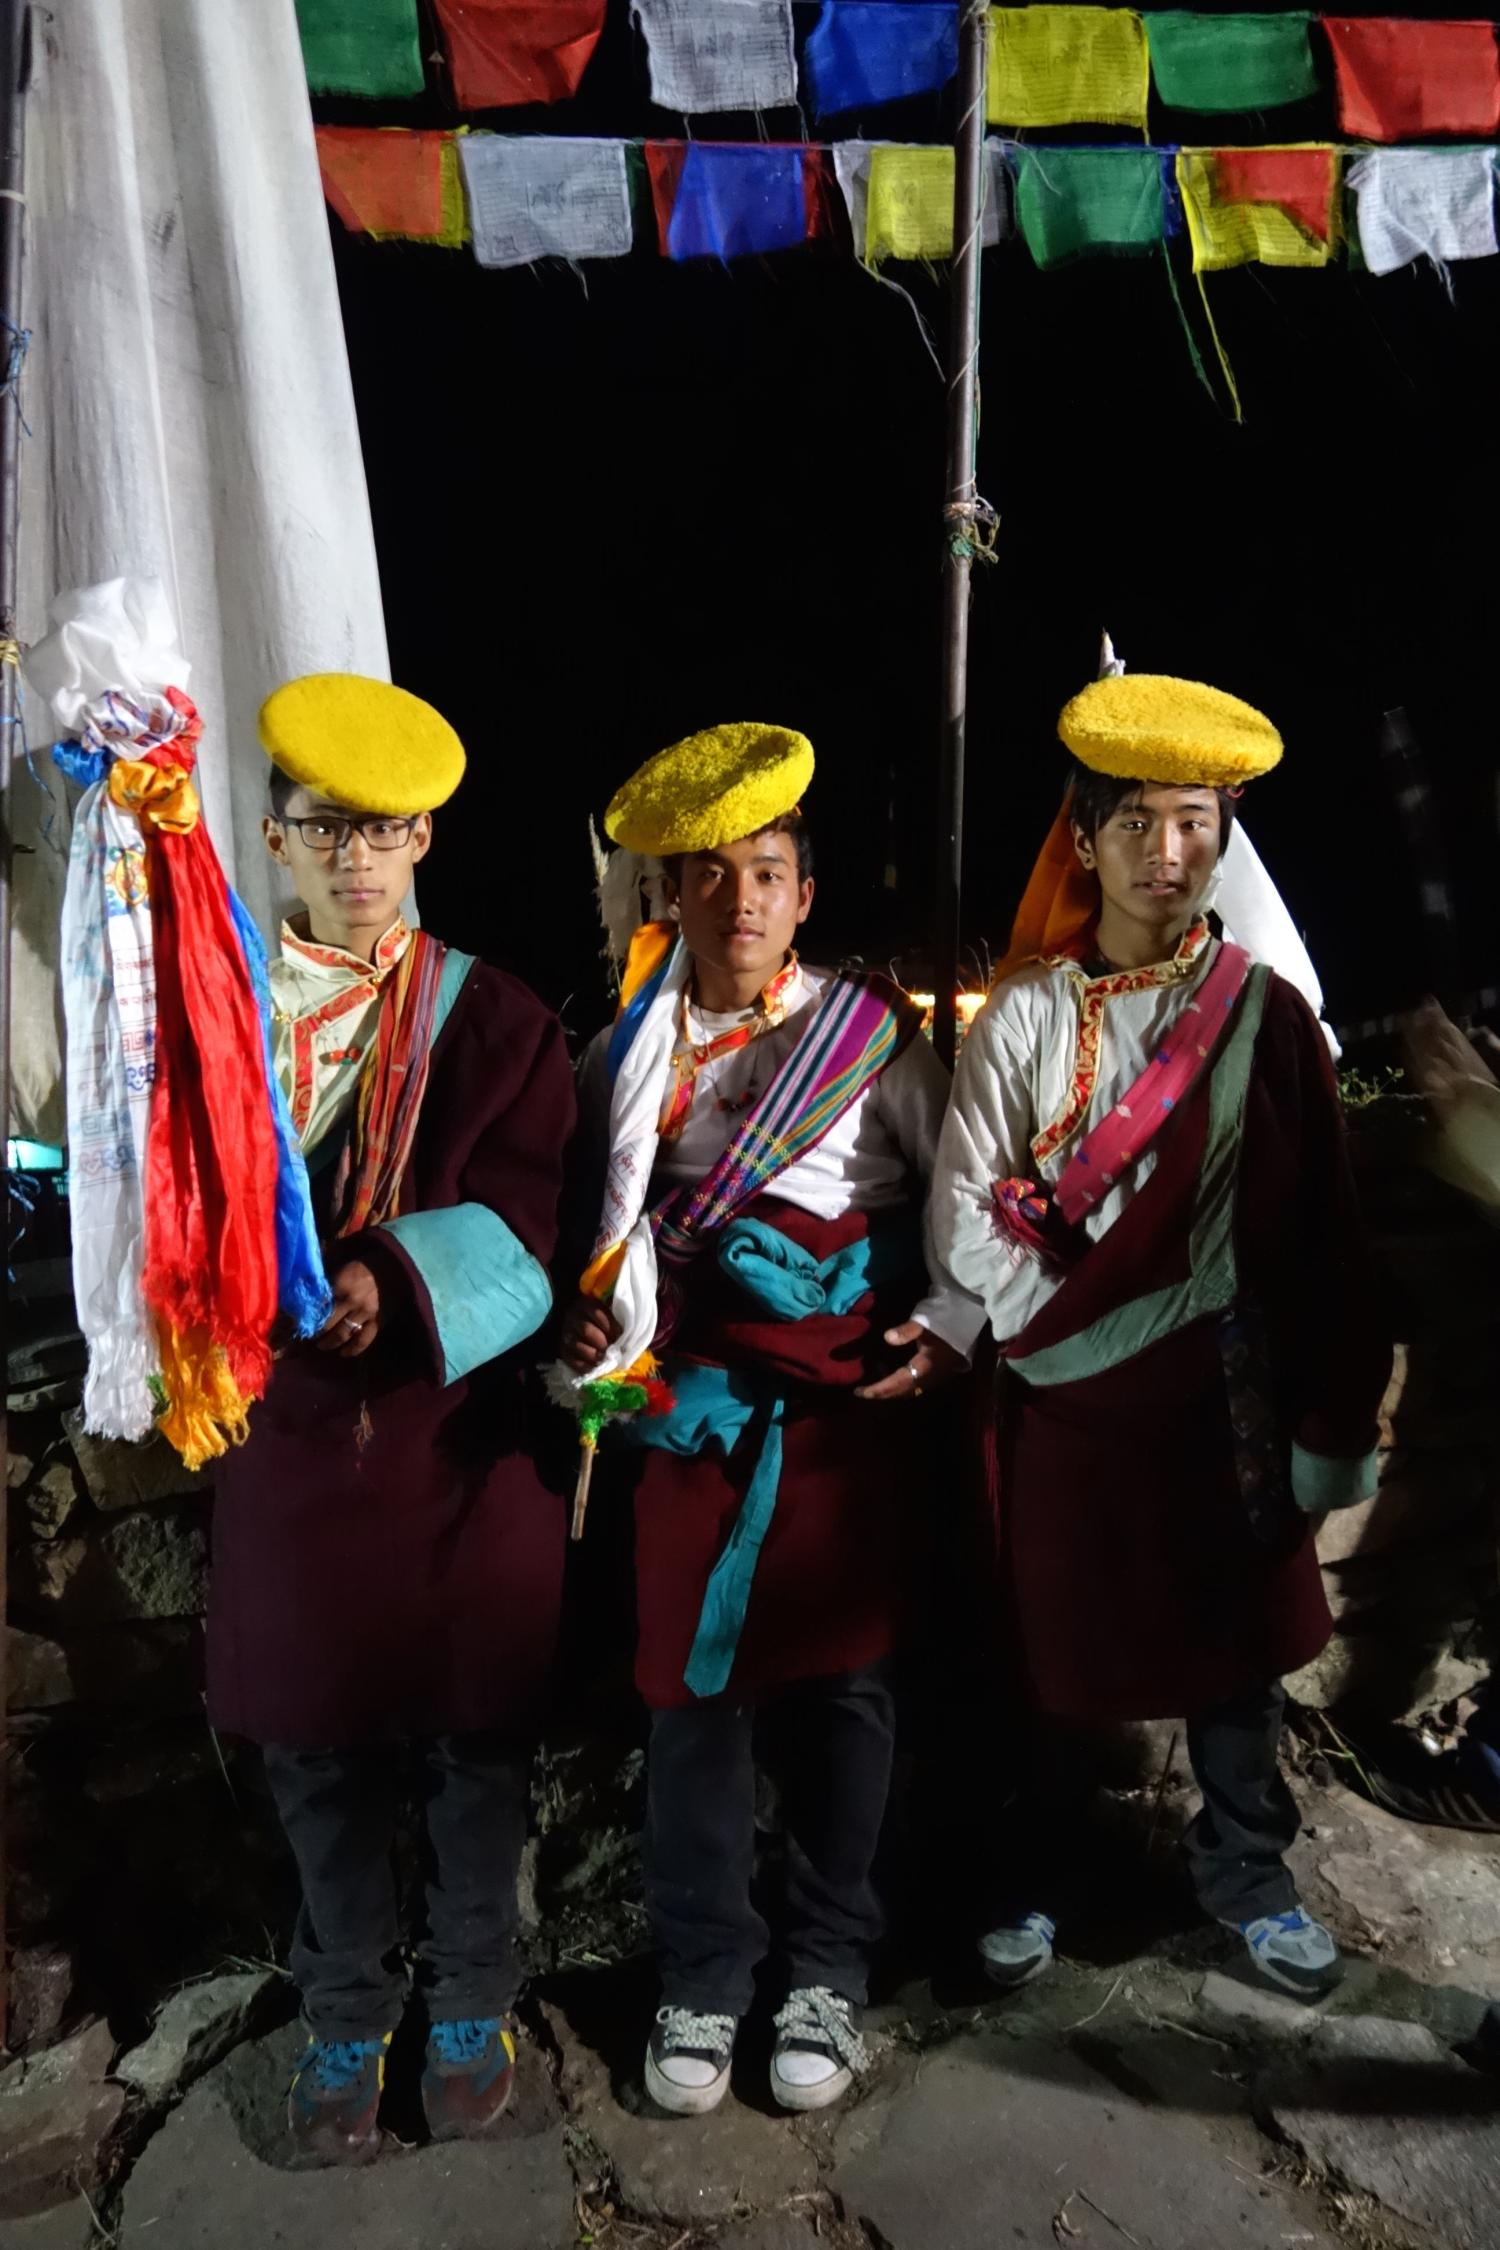 Tamang youth in traditional Tibetan dress